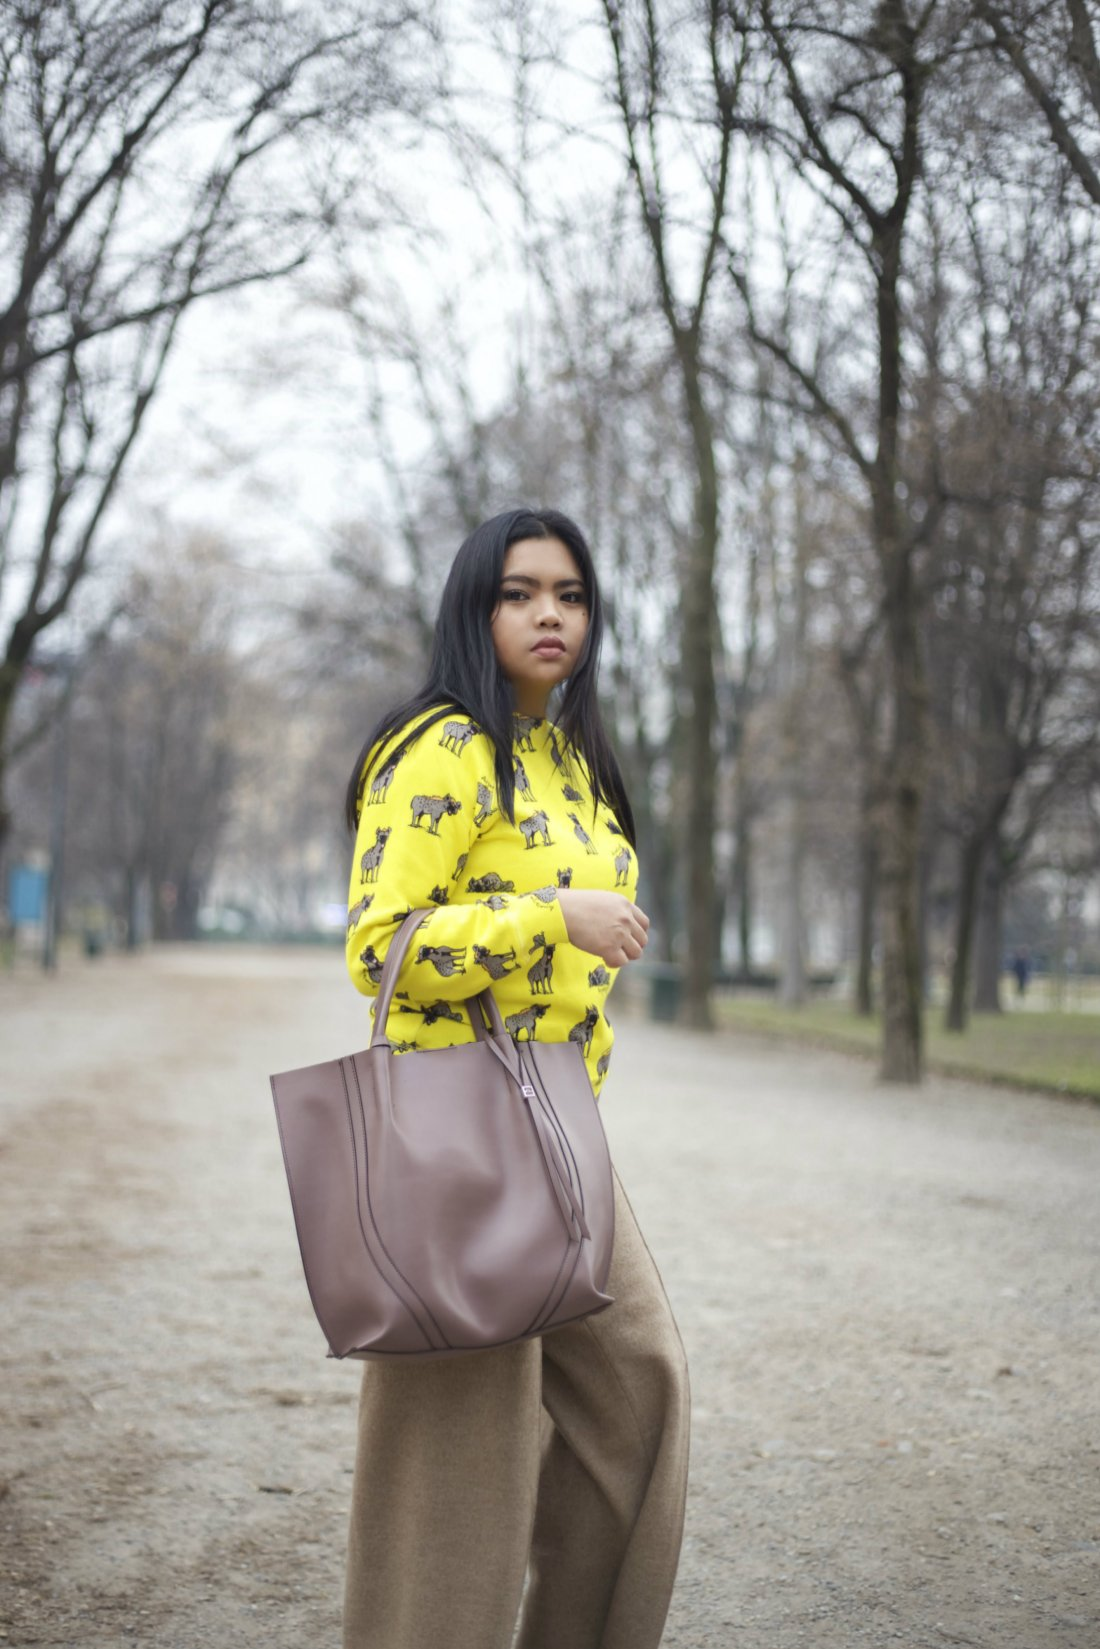 zara pants au jour le jour sweater gianni chiarinni bag